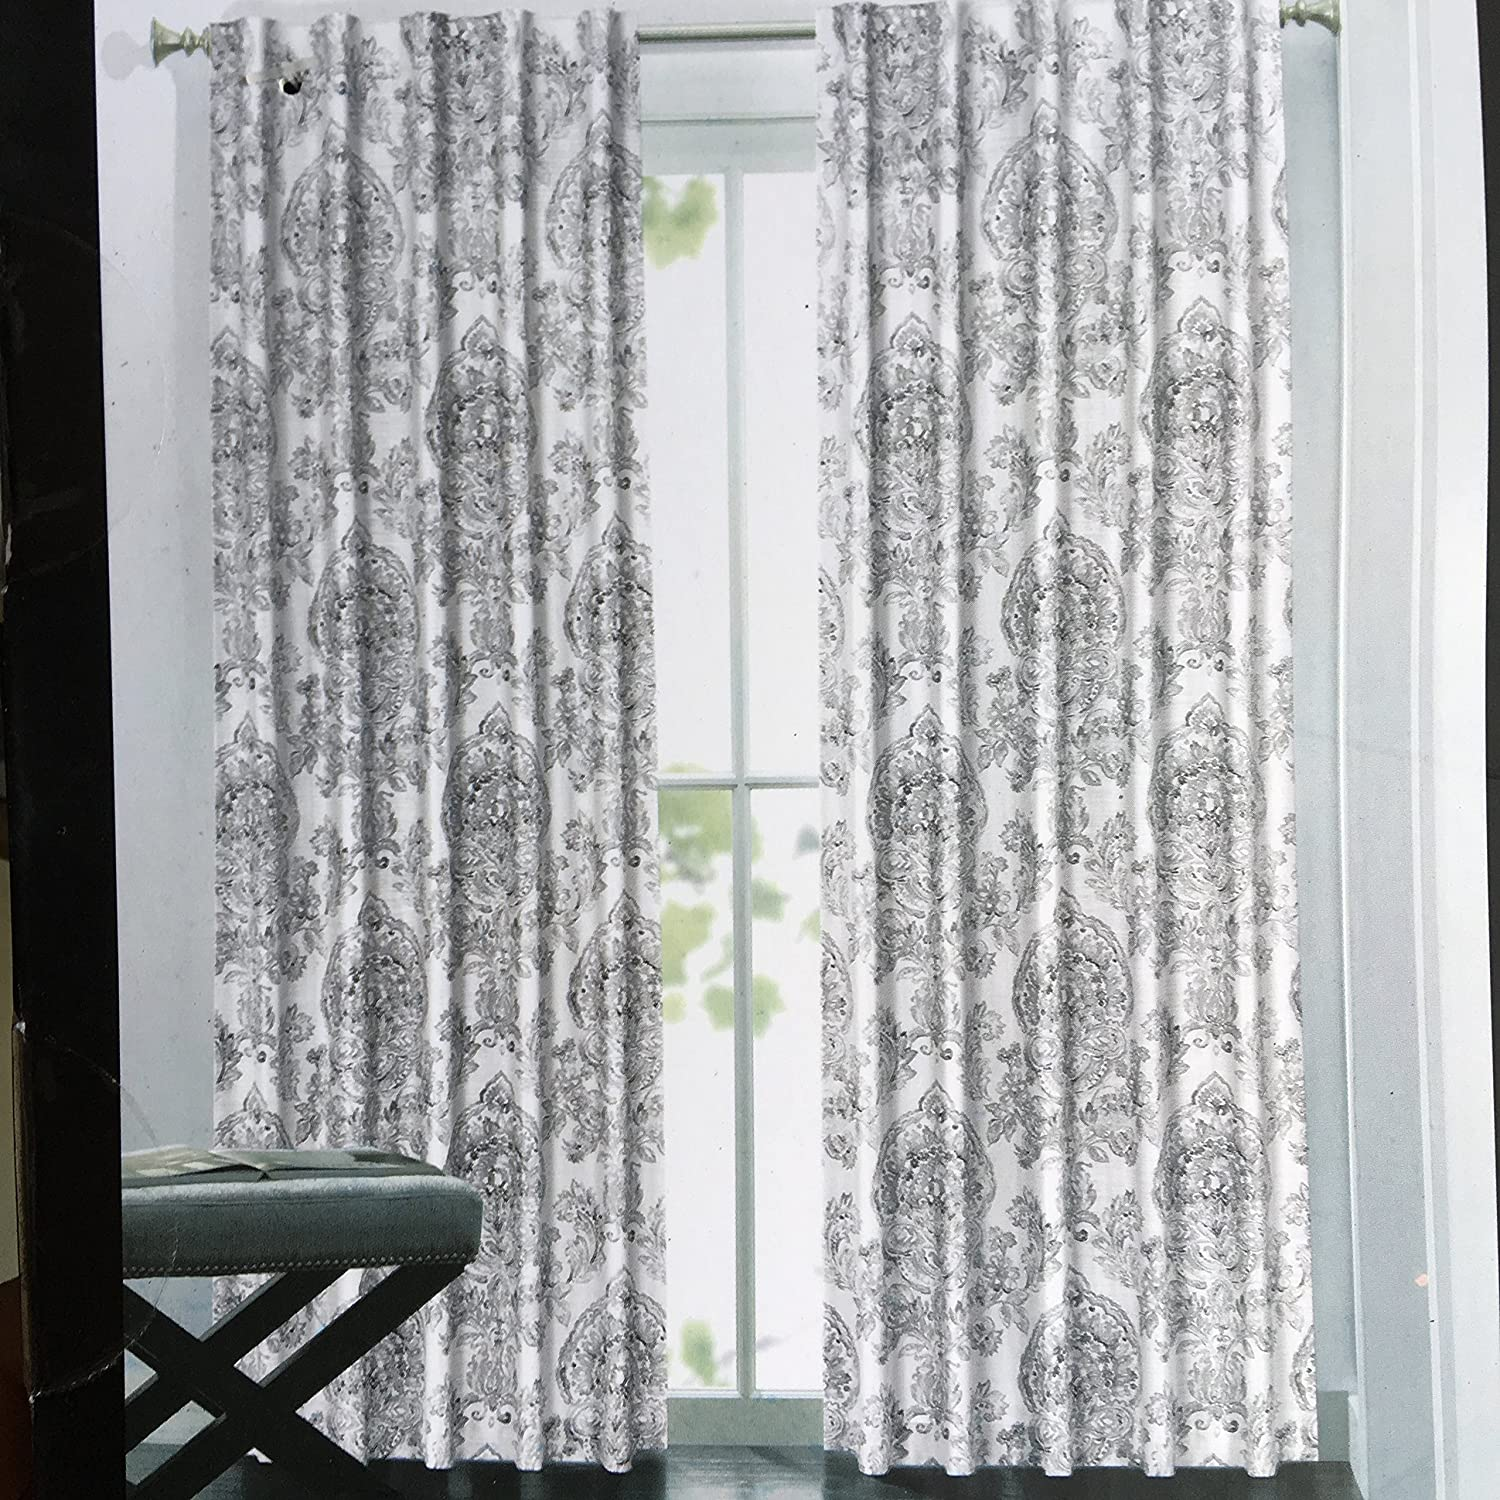 Tahari Window Curtain Panels 52 Inches By 96 Set Of 2 Light Gray And Charcoal